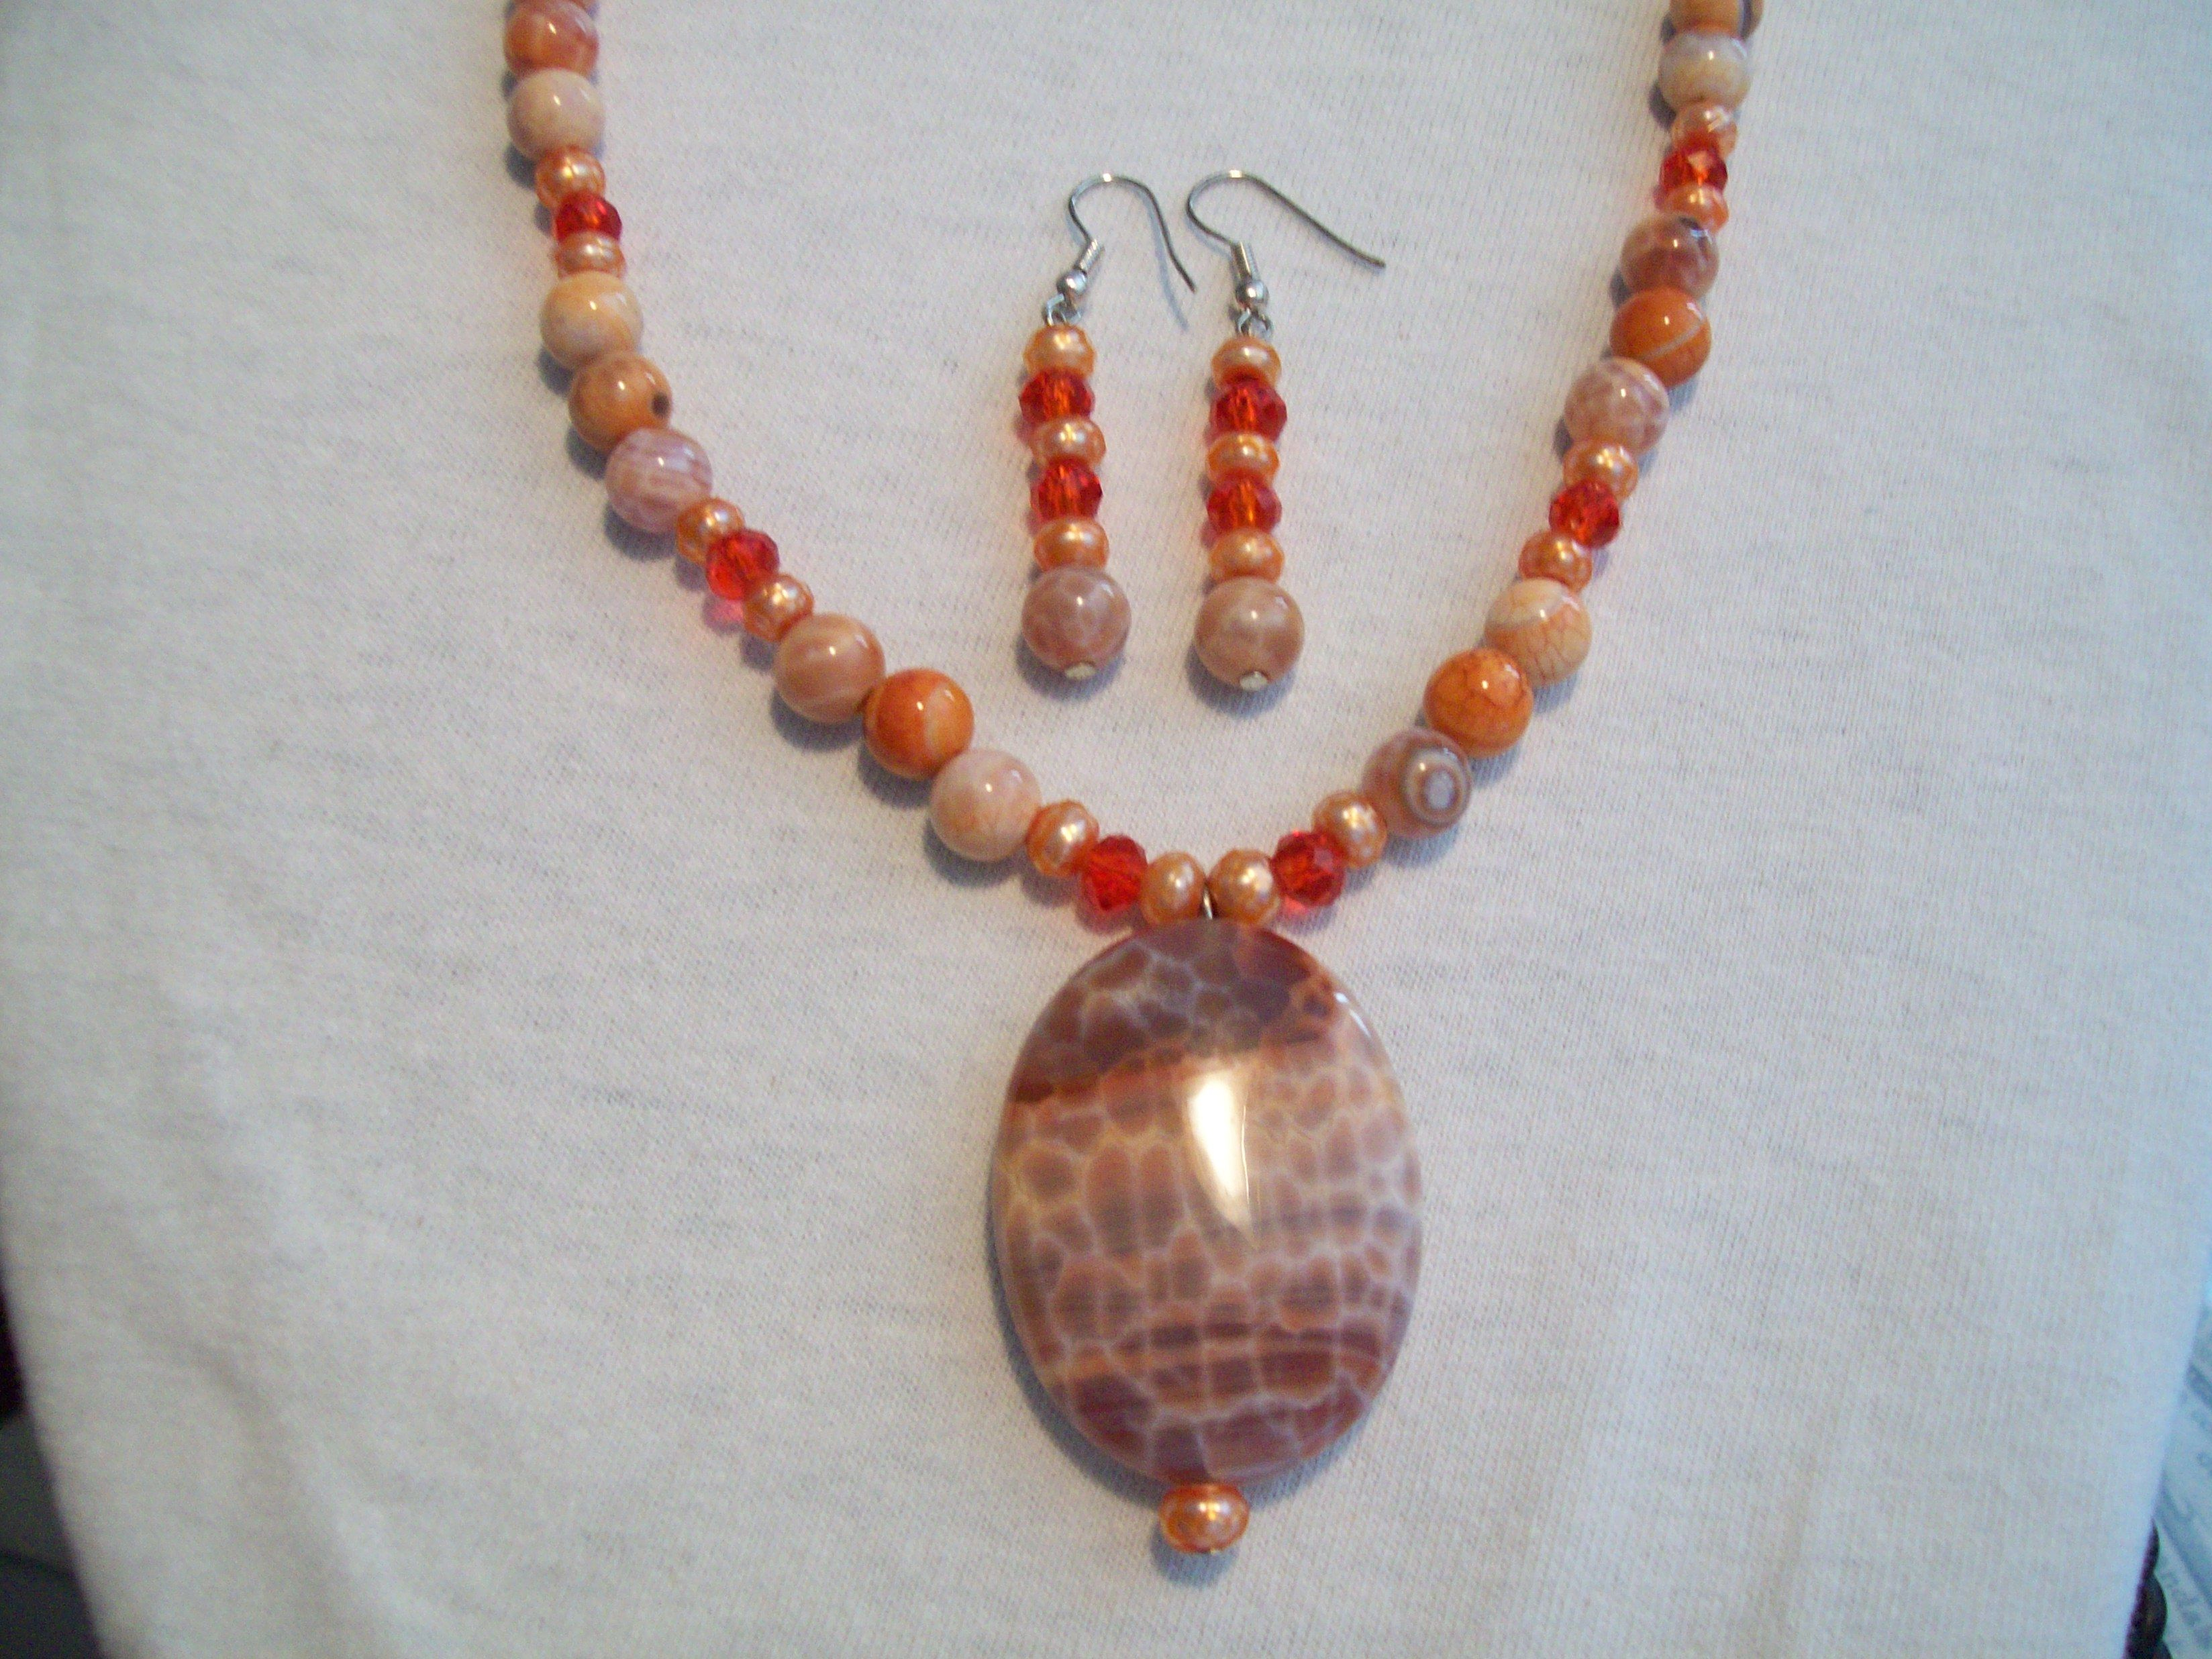 FIRE AGATE NECKLACE $50 including earrings